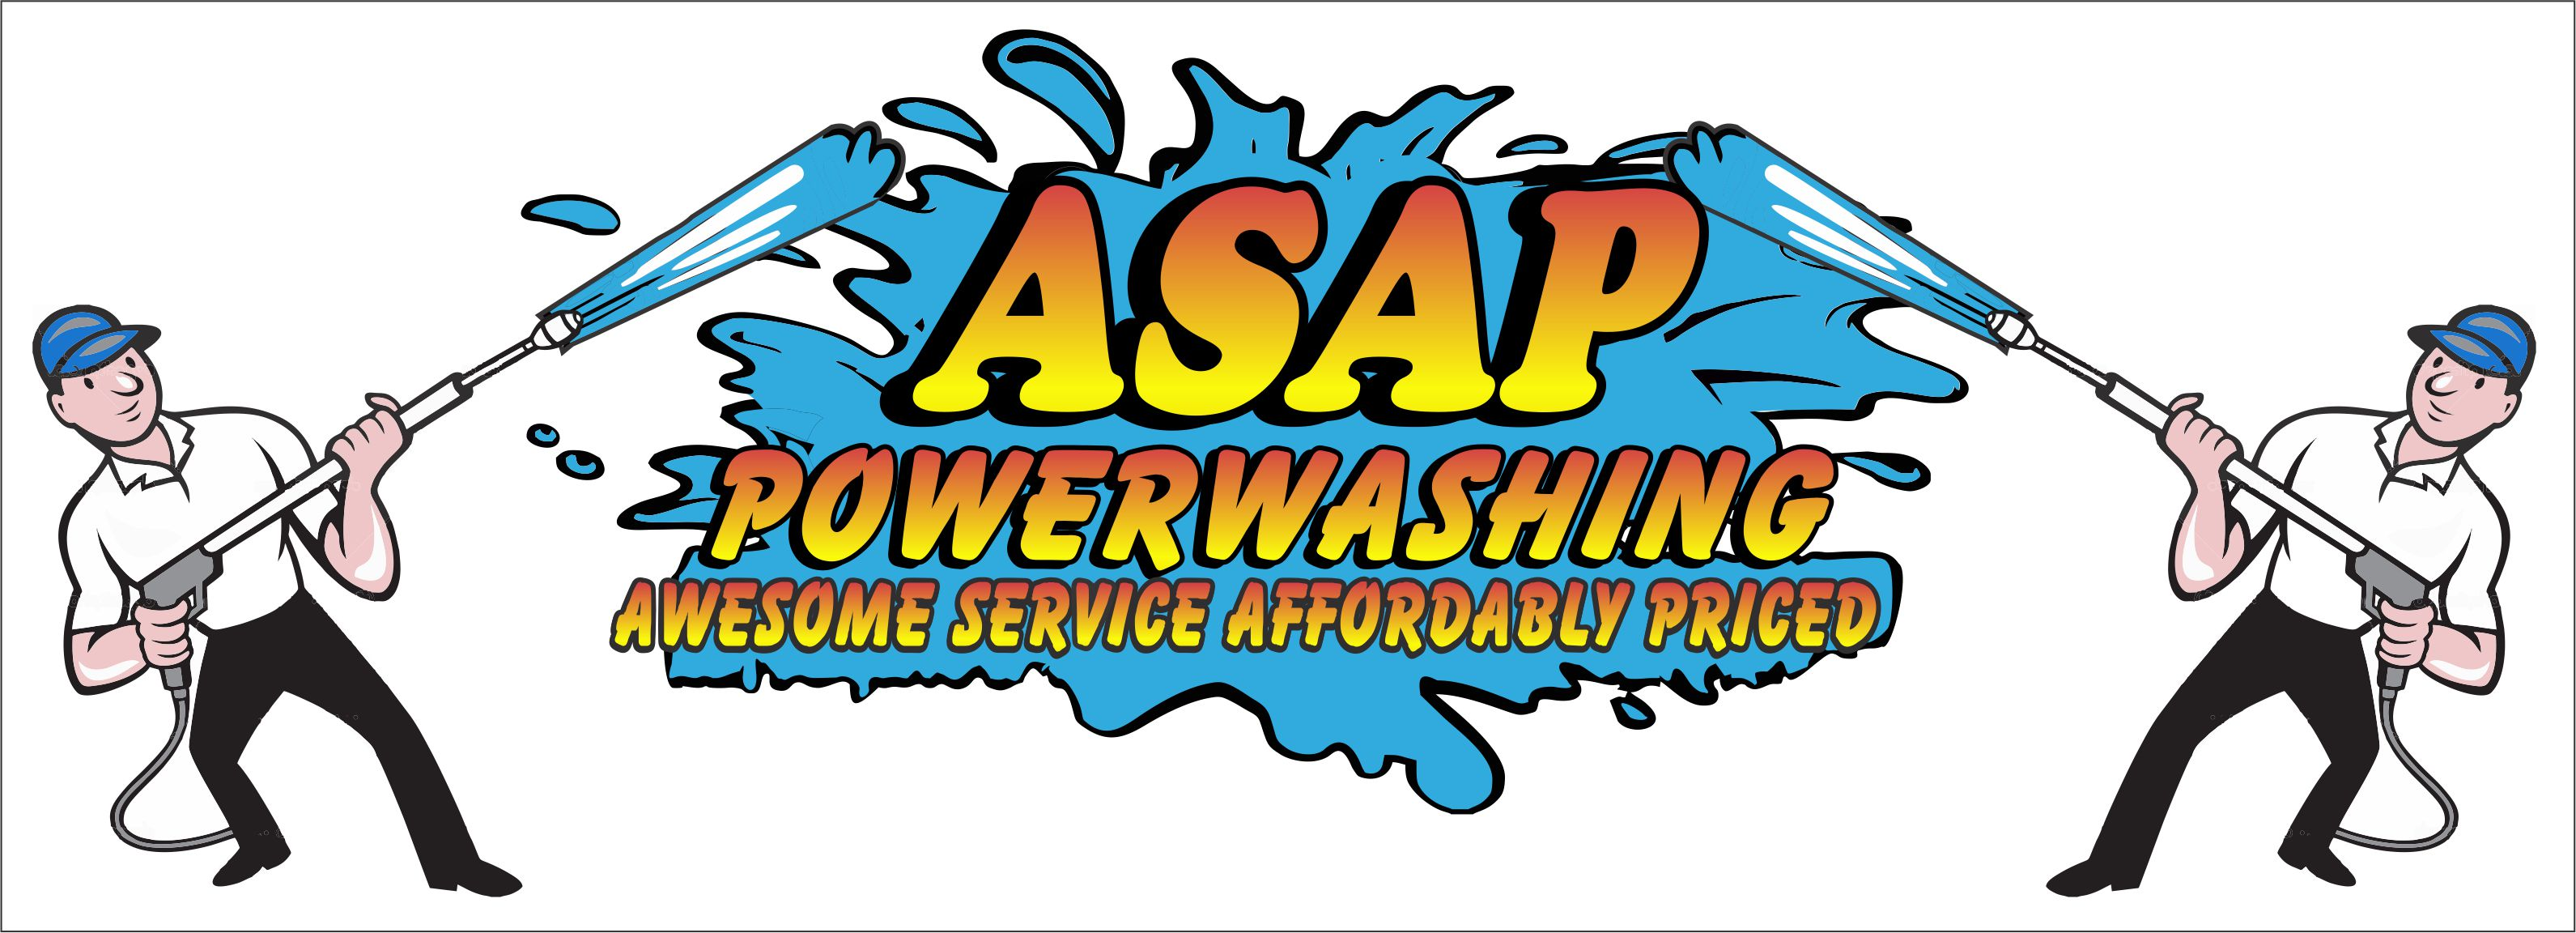 ASAP Powerwashing & Detailing